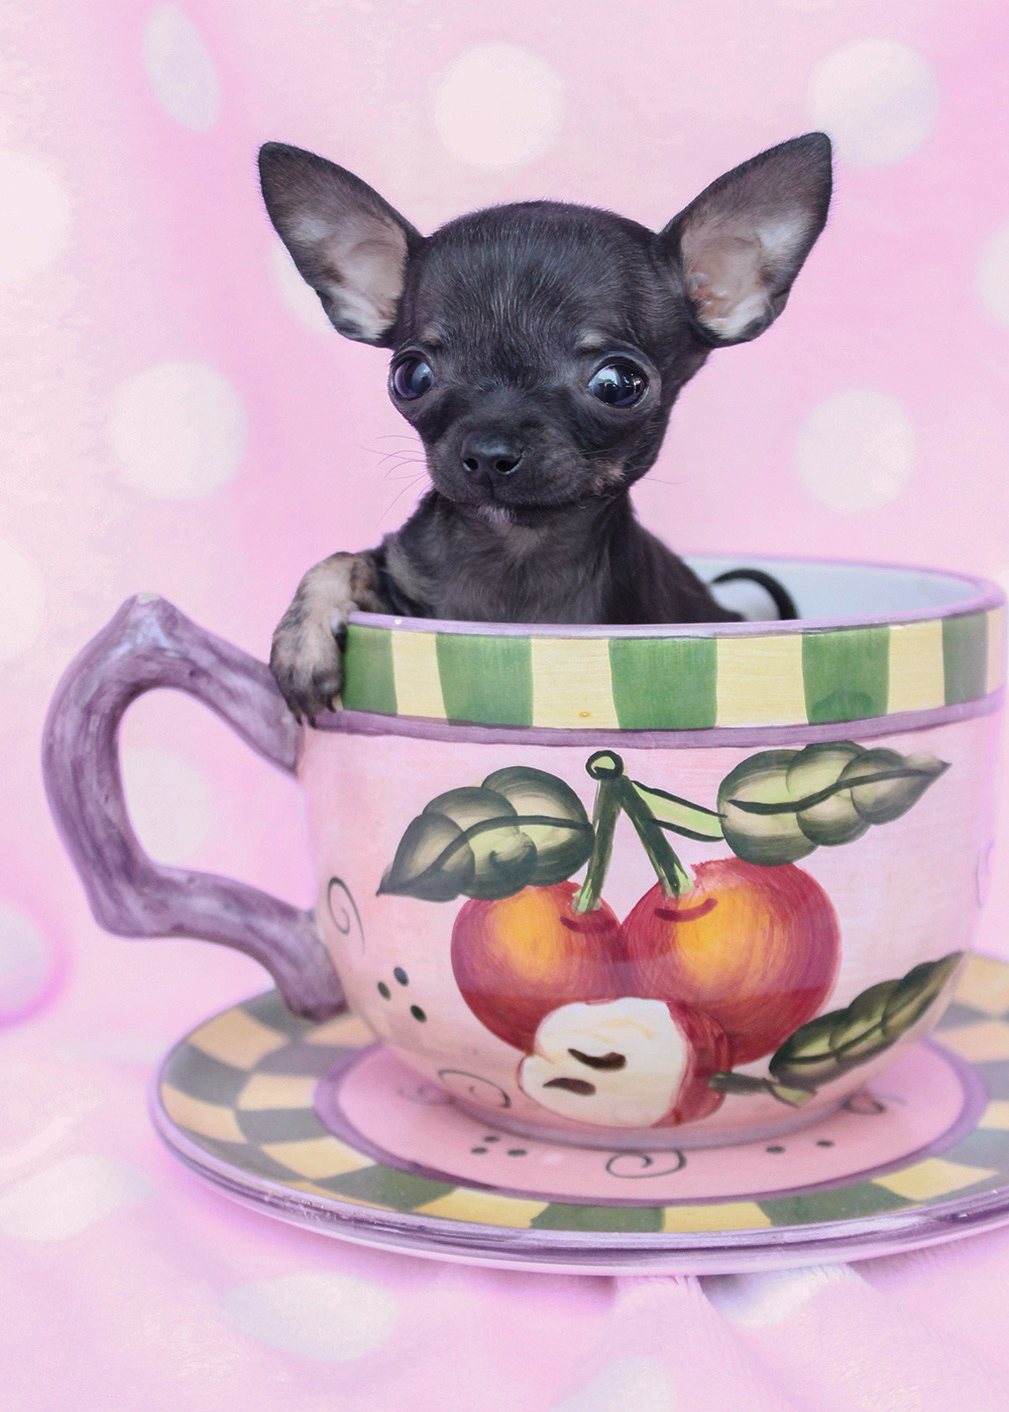 Tiny Teacup Chihuahua Puppies For Sale in South Florida | Teacups